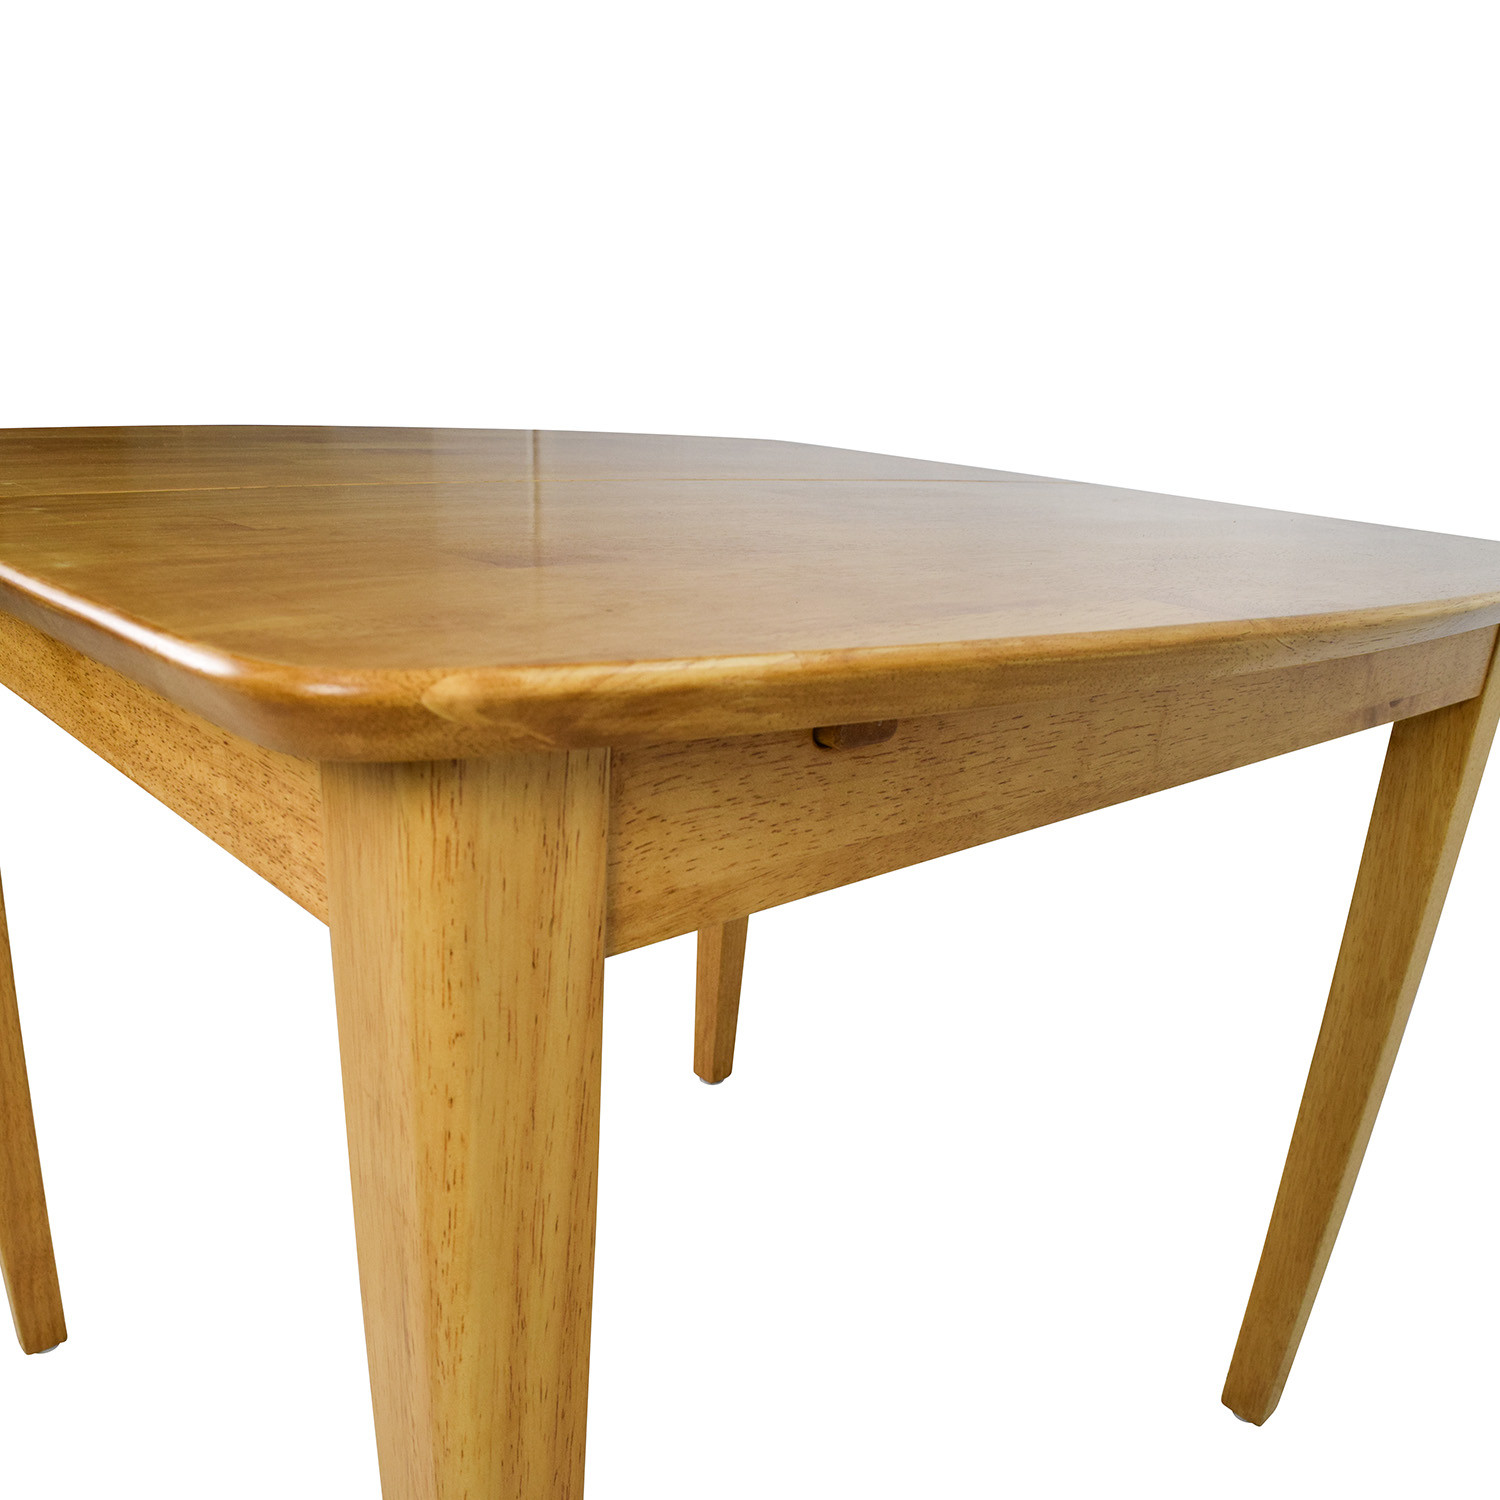 Best ideas about Extension Dining Table . Save or Pin OFF Unknown Solid Wood Extension Dining Table Tables Now.